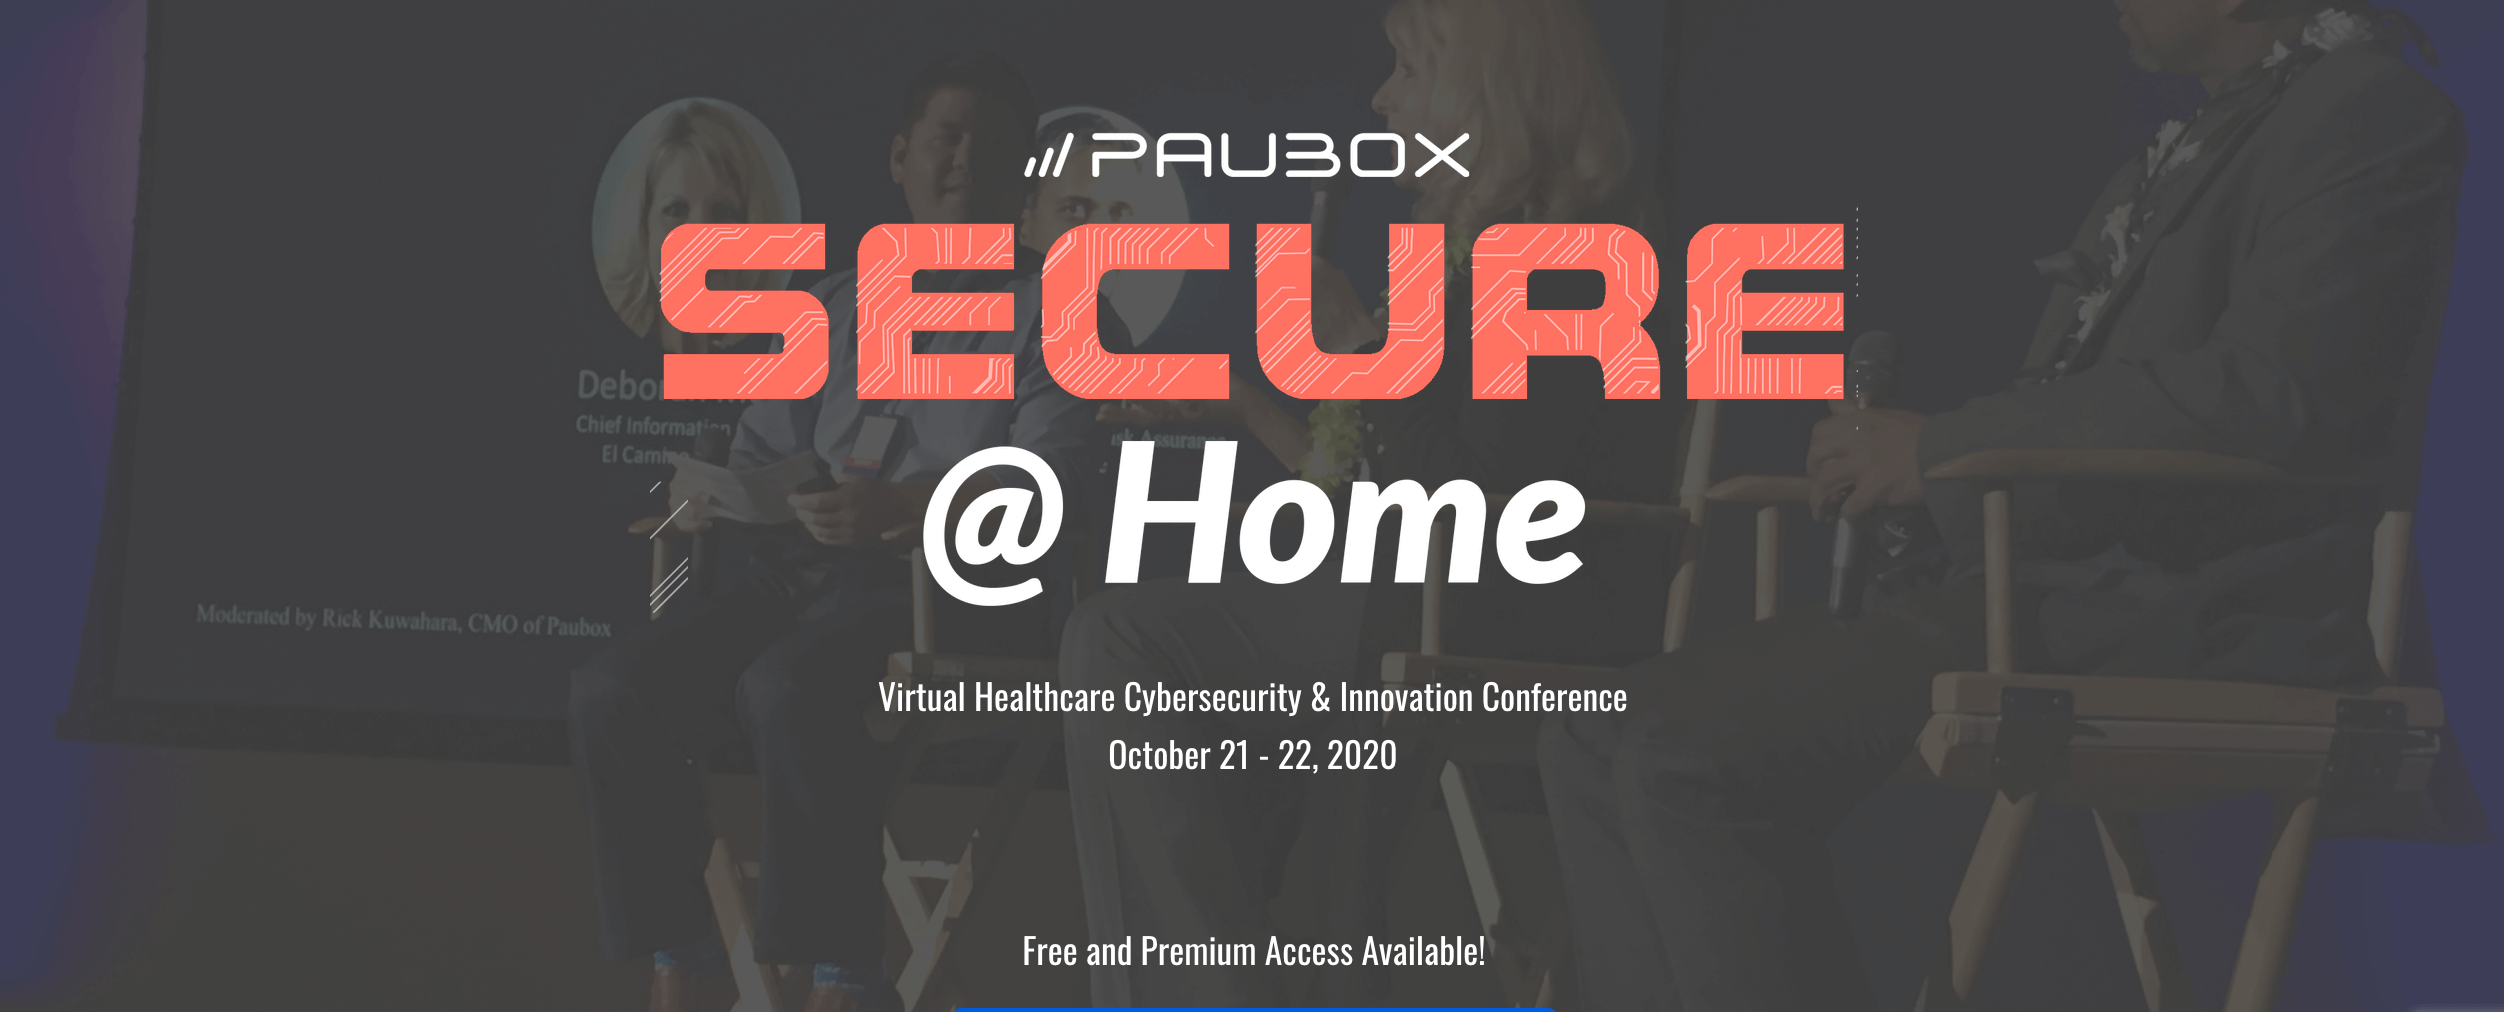 Paubox SECURE @ Home